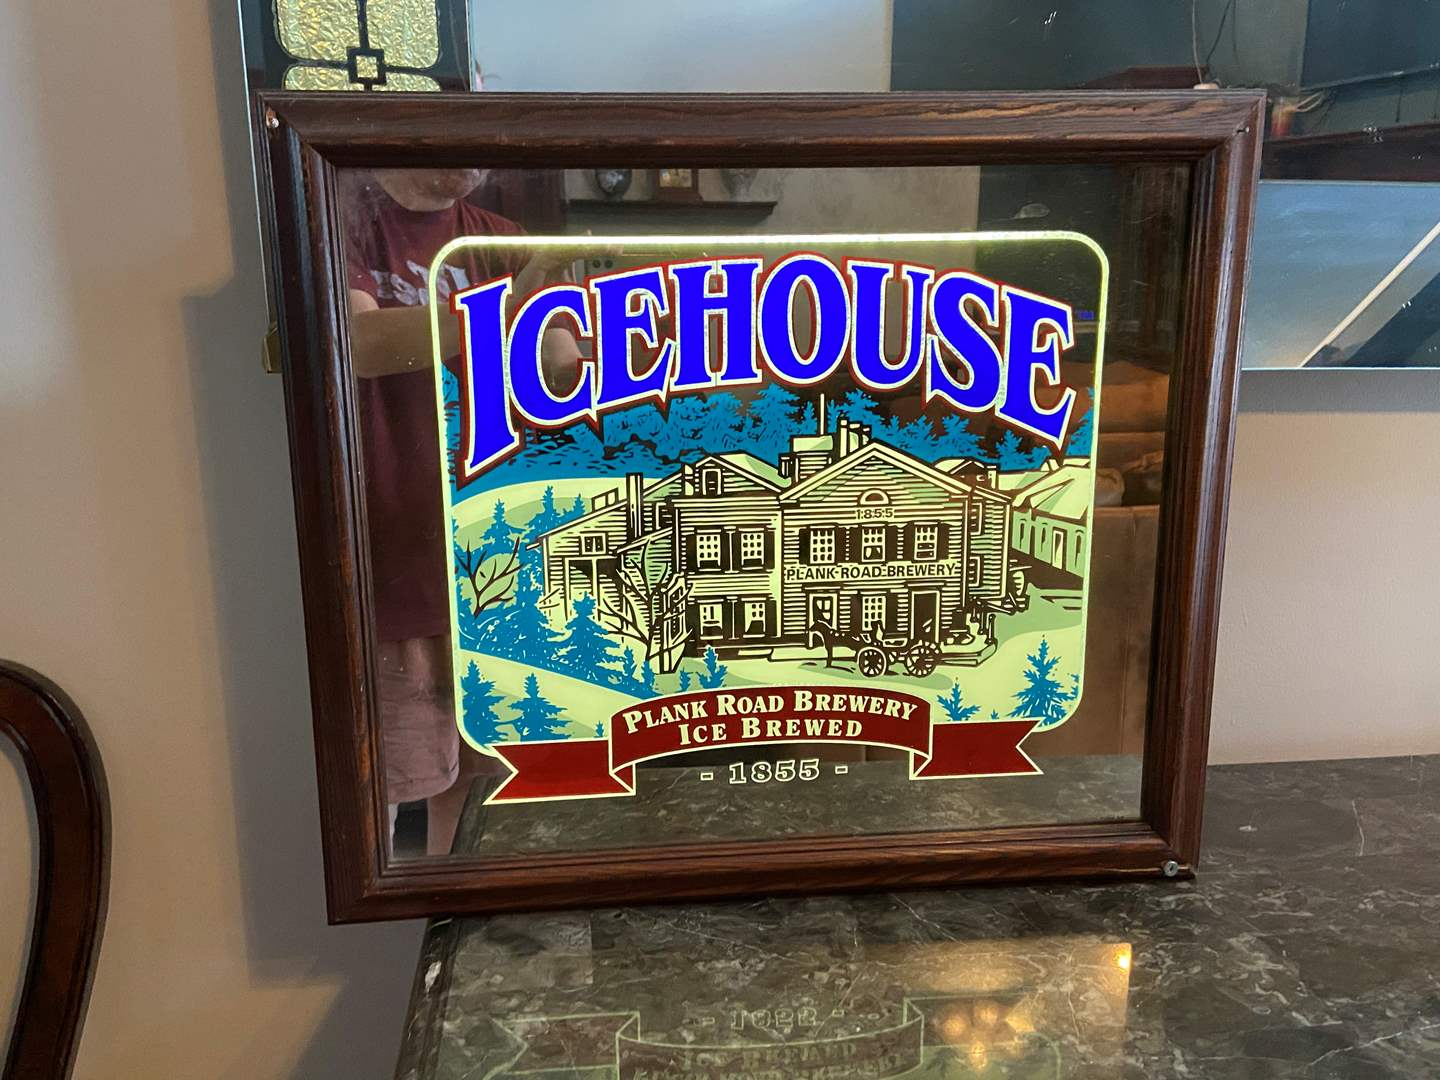 Lot # 491 Icehouse Plank Road Brewery Light Up Sign